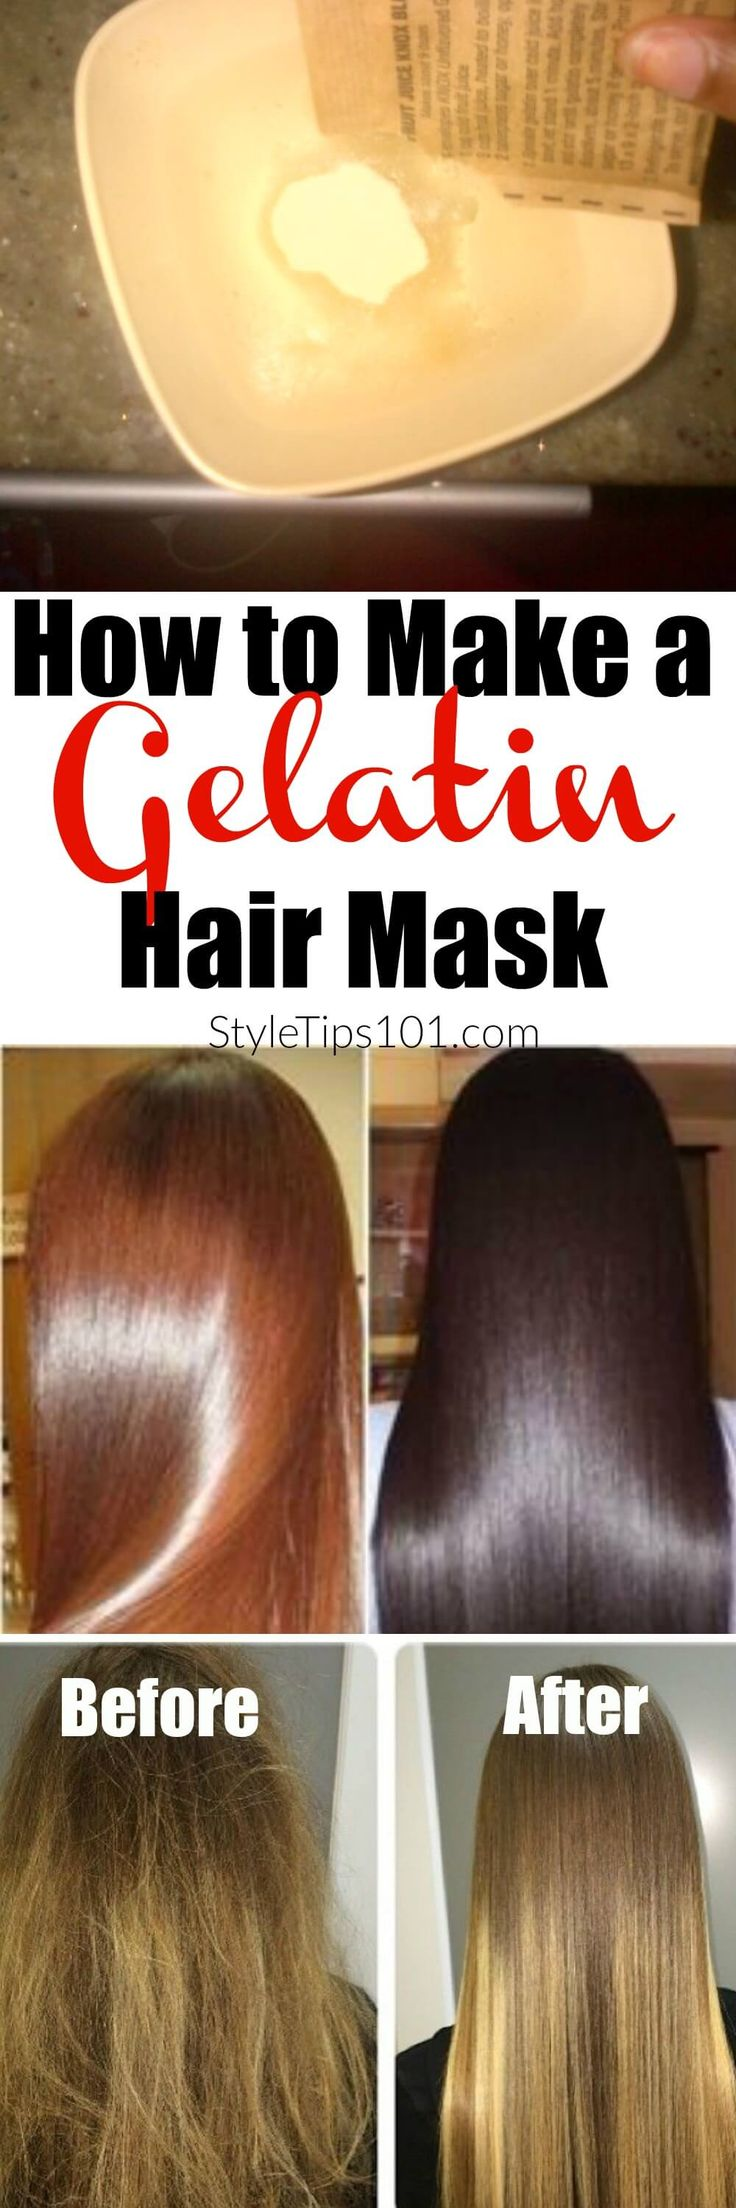 Today we'll show you how to make a gelatin hair mask with all natural ingredients that will leave your hair ultra shiny, sleek, and healthy looking!